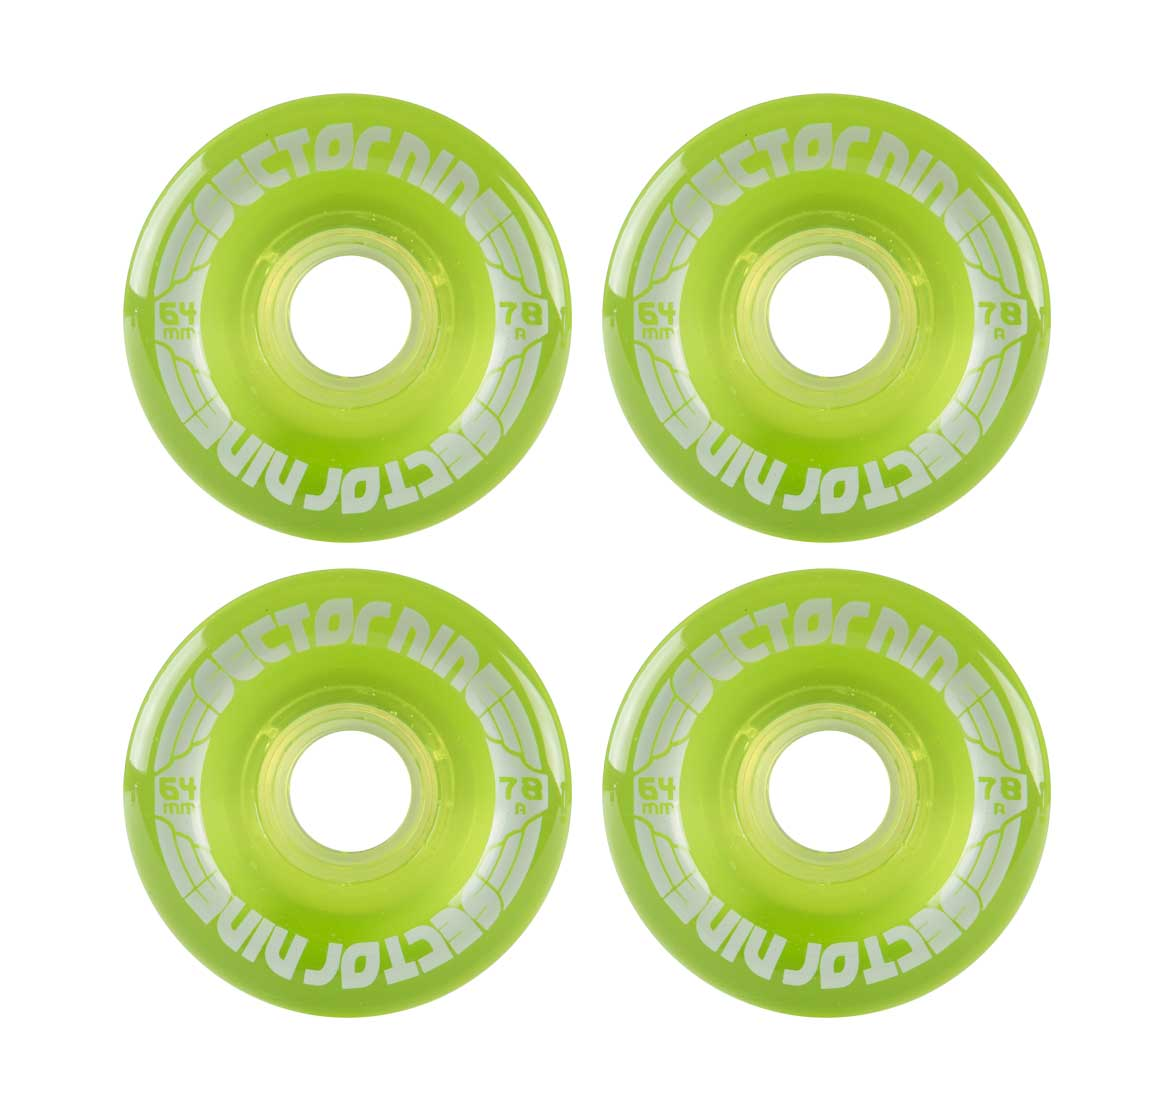 sector 9 64mm Nine balls 78a centerset light green